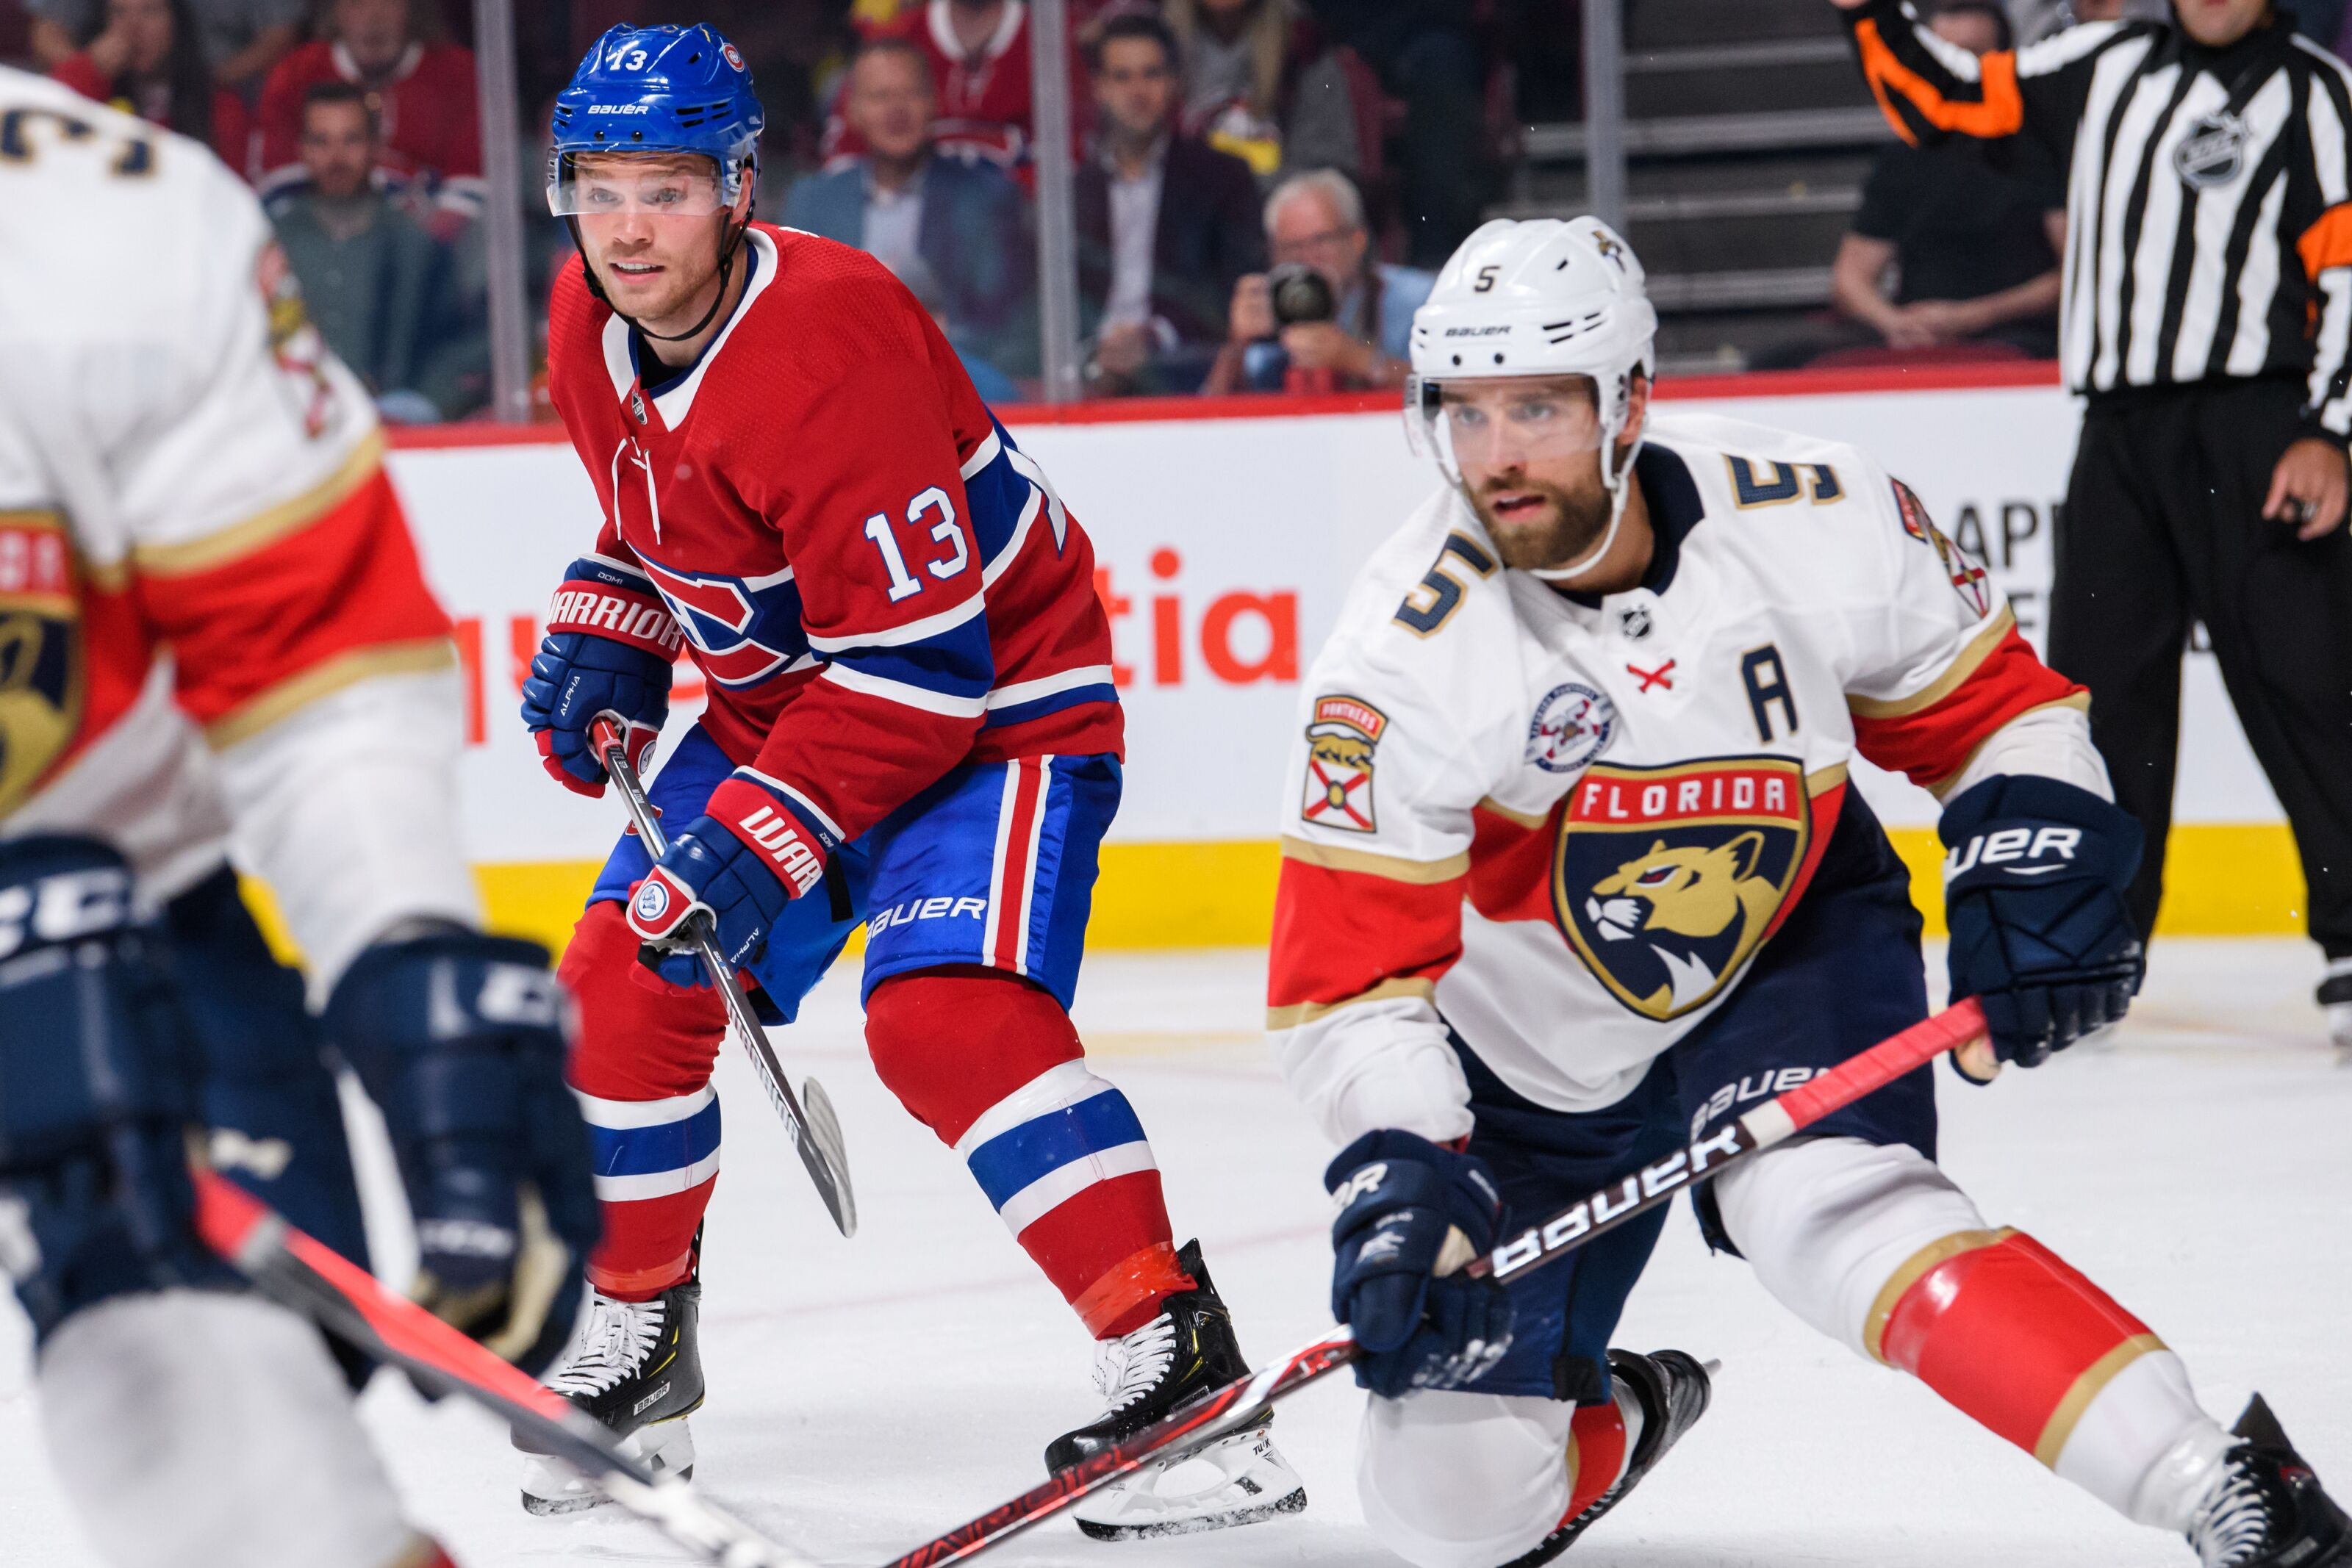 c8401123e92 Florida Panthers: NHL Got Max Domi's Suspension Wrong